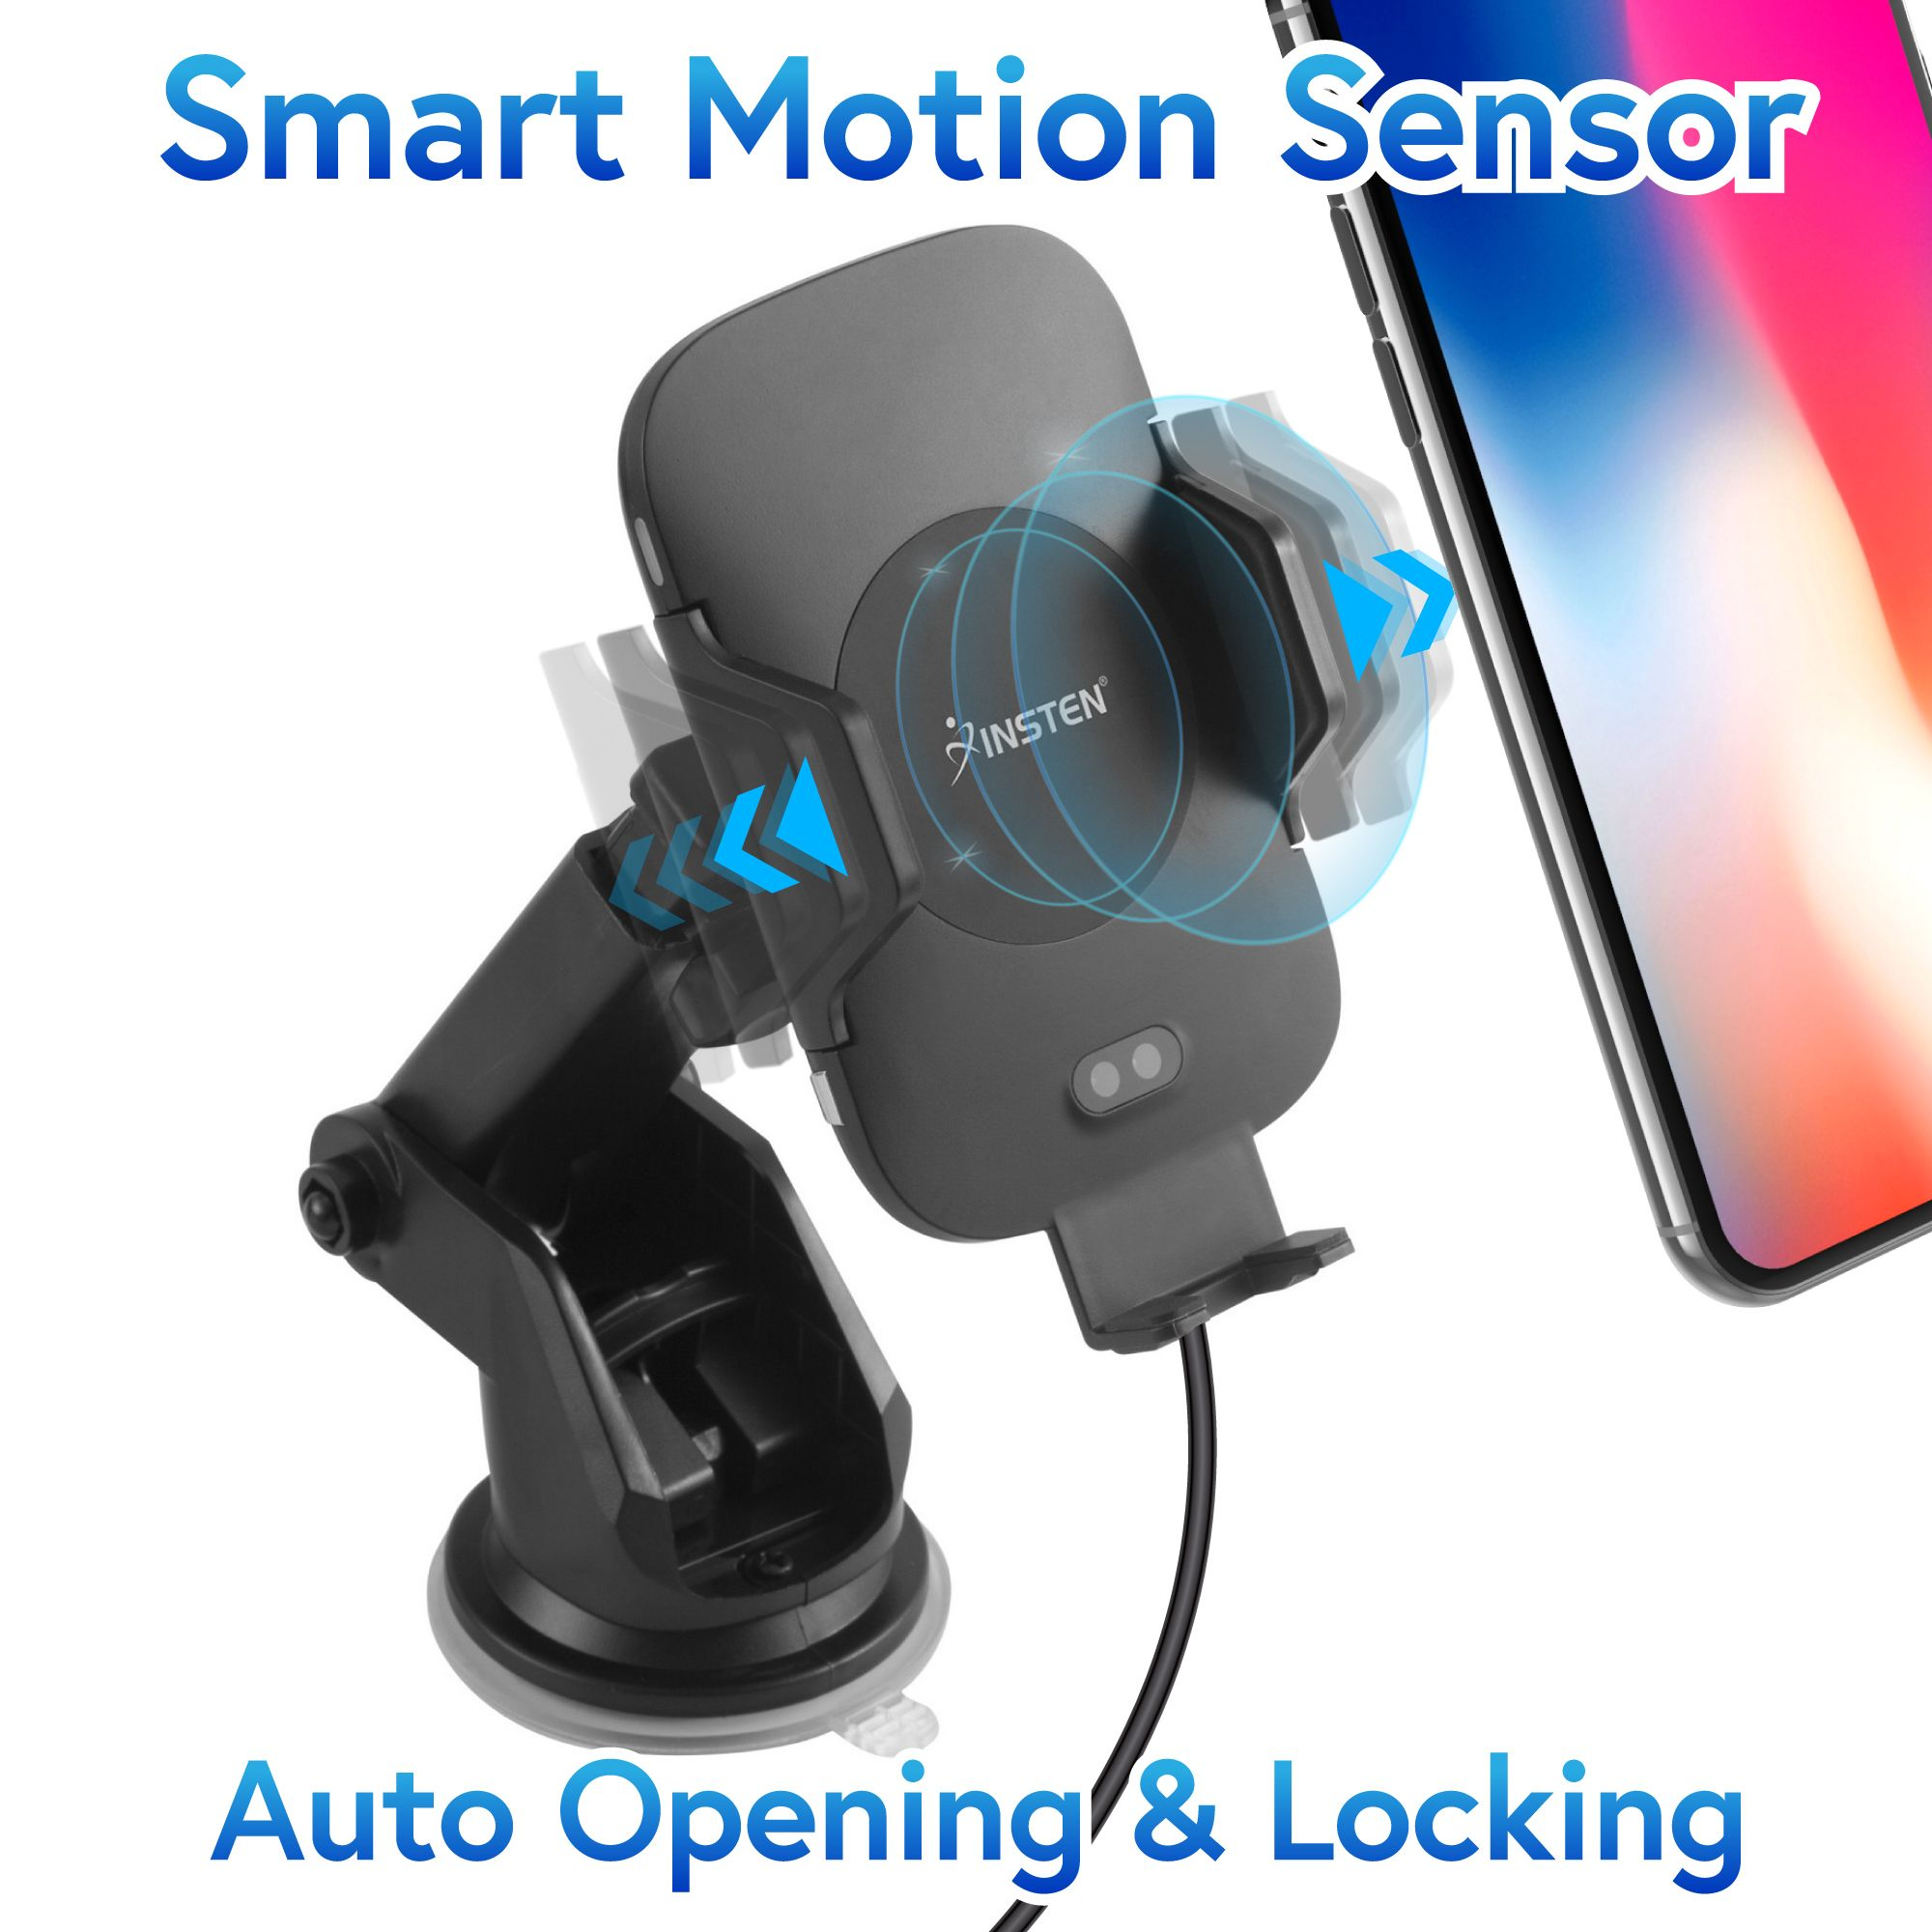 Insten Infrared Sensor Auto Open and Lock Air Vent & Suction Car Mount with Fast Wireless Charging Pad for iPhone XS X 8 Plus Samsung Galaxy S9 S9+ S8 LG G7